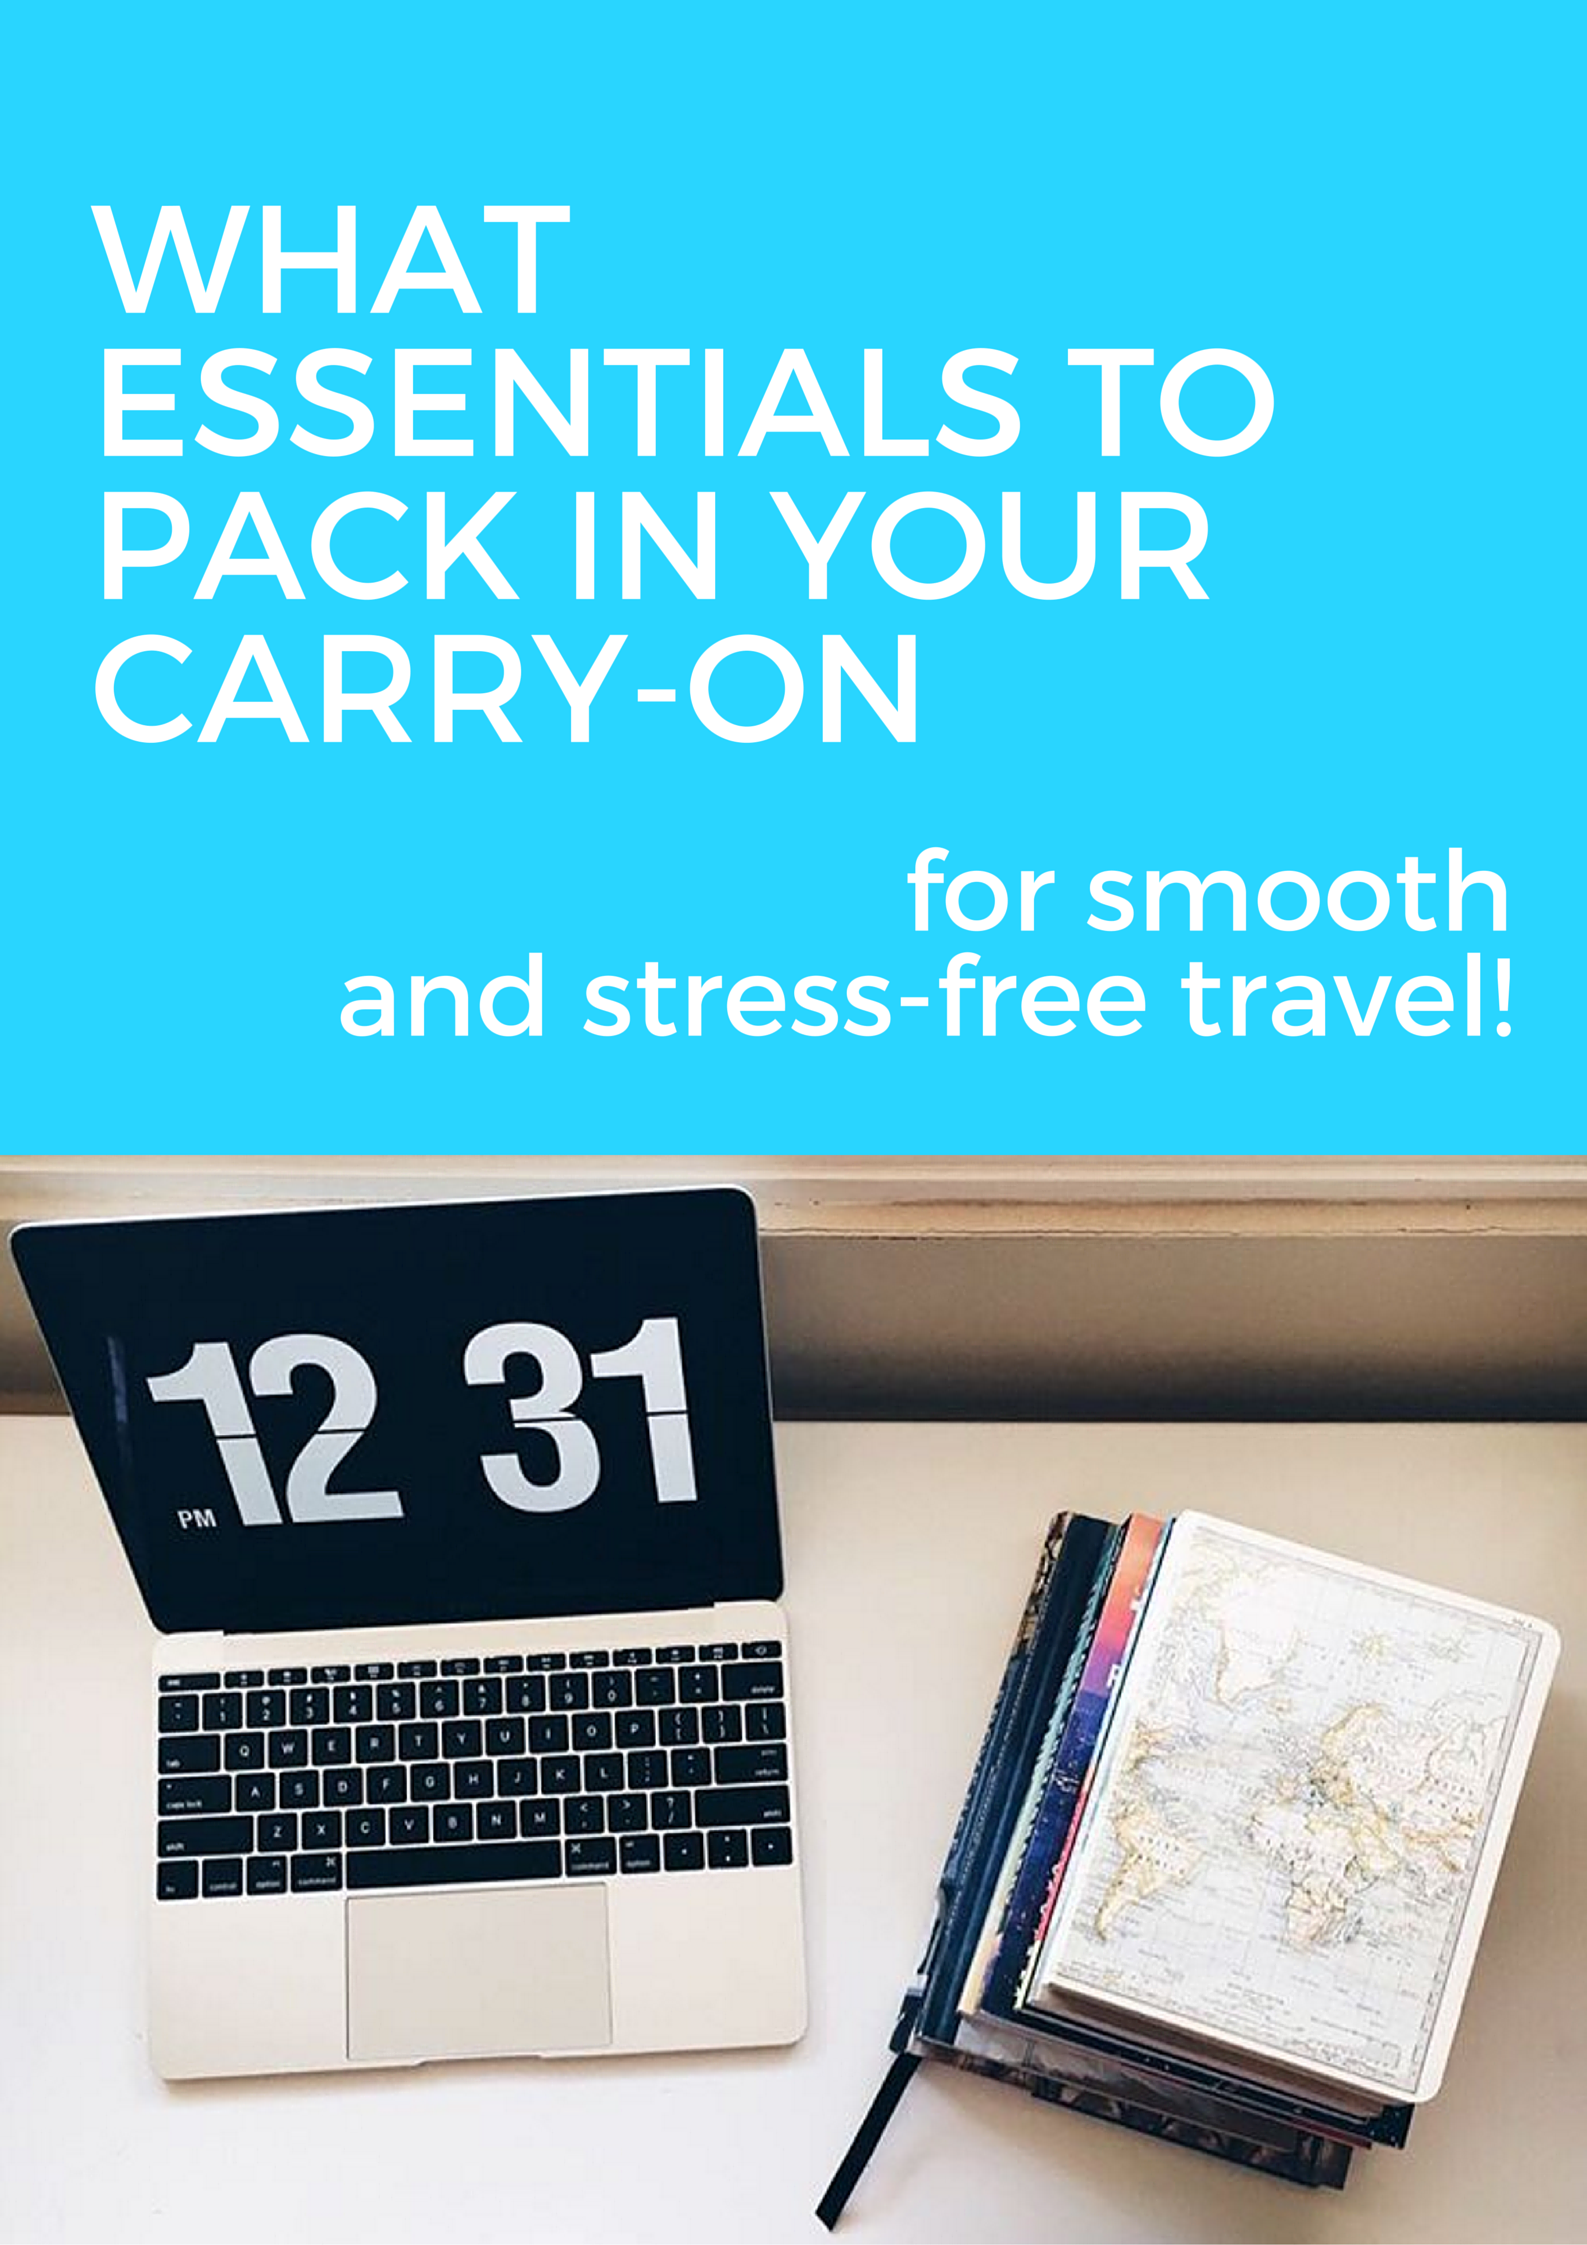 What essentials to pack in your carry-on for smooth and stress-free travel!